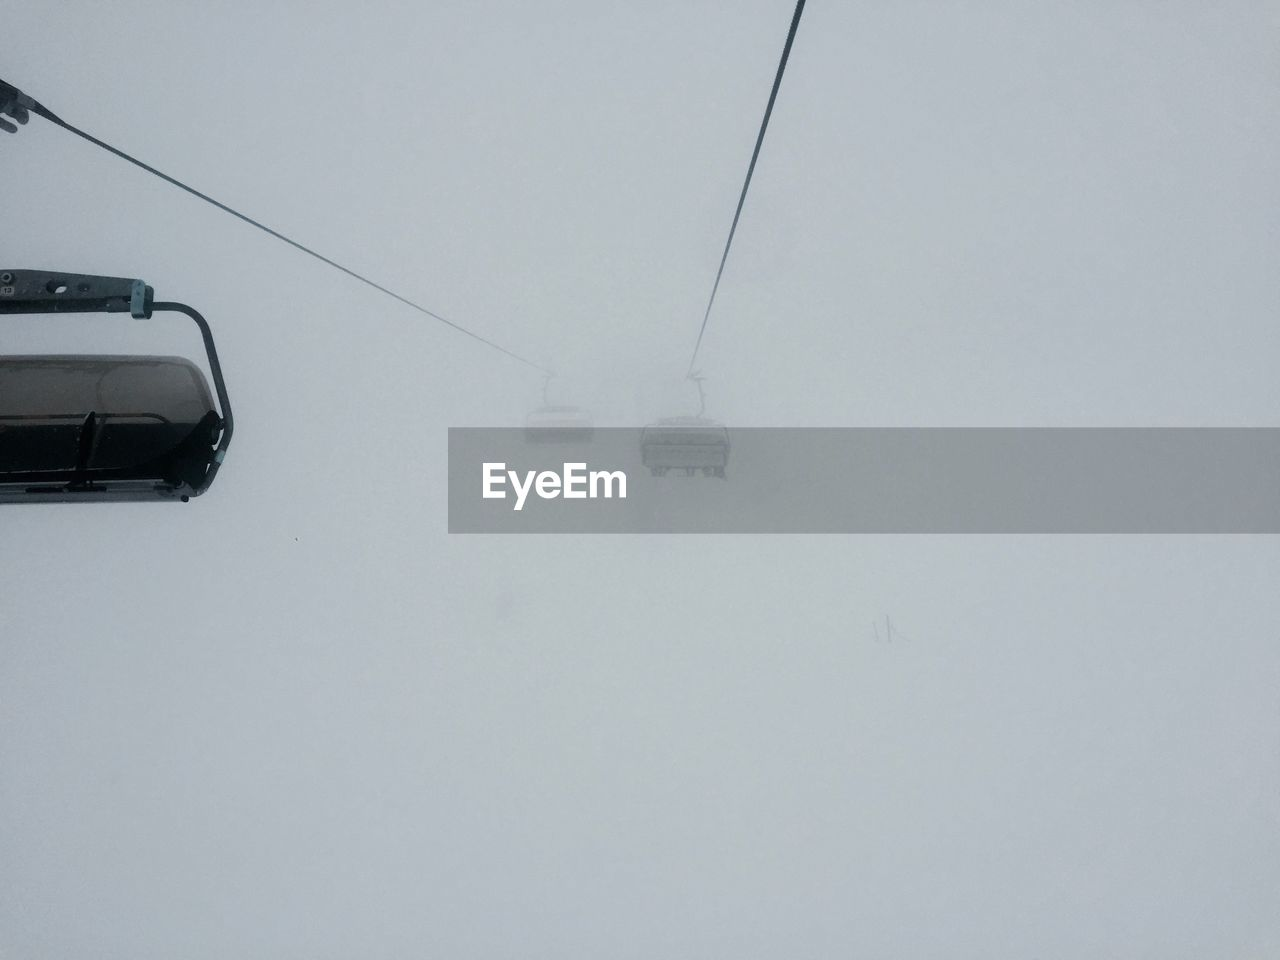 winter, cold temperature, transportation, nature, overhead cable car, snow, weather, ski lift, cable, fog, mode of transport, day, outdoors, beauty in nature, no people, scenics, sky